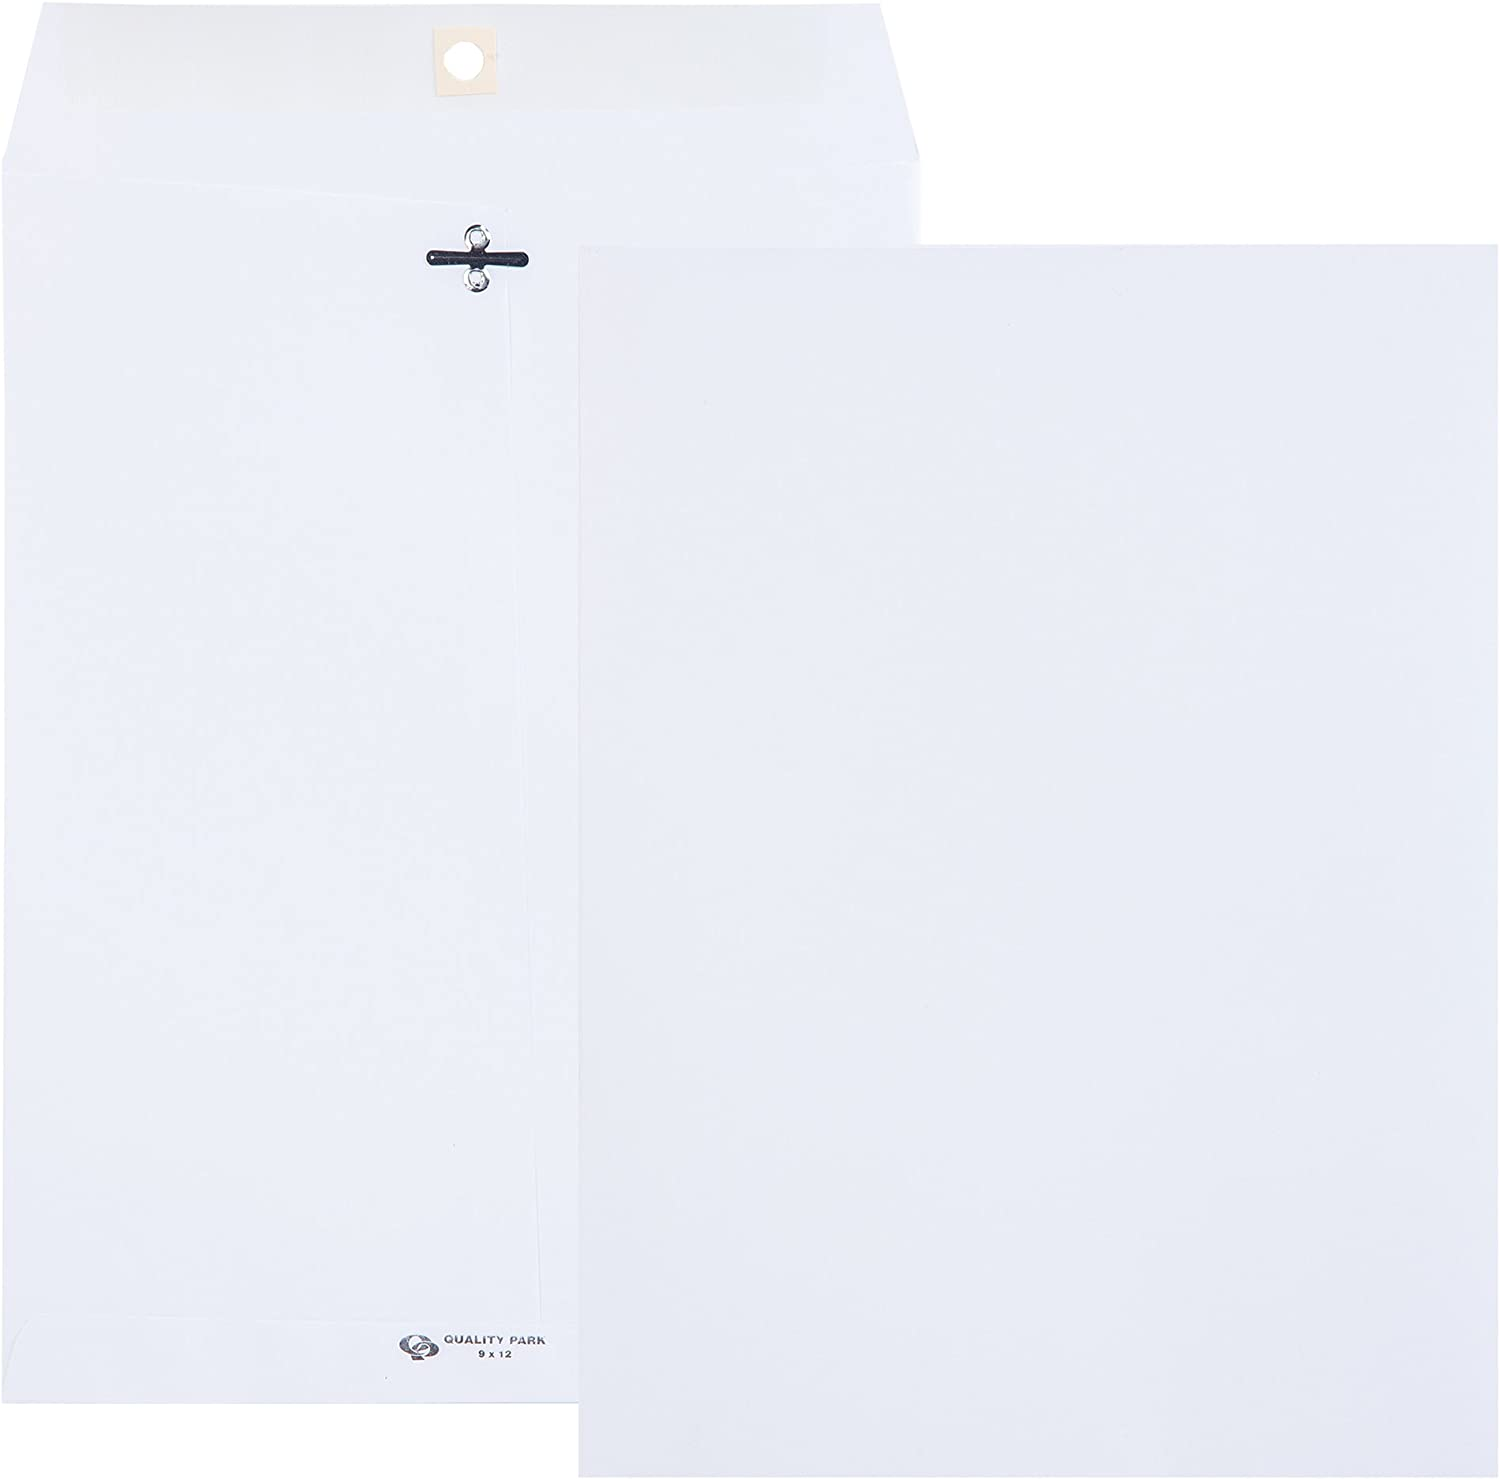 Quality Park, Clasp Envelopes, Gummed, White Wove, 9x12, 100 per Box (38390) : Office Products